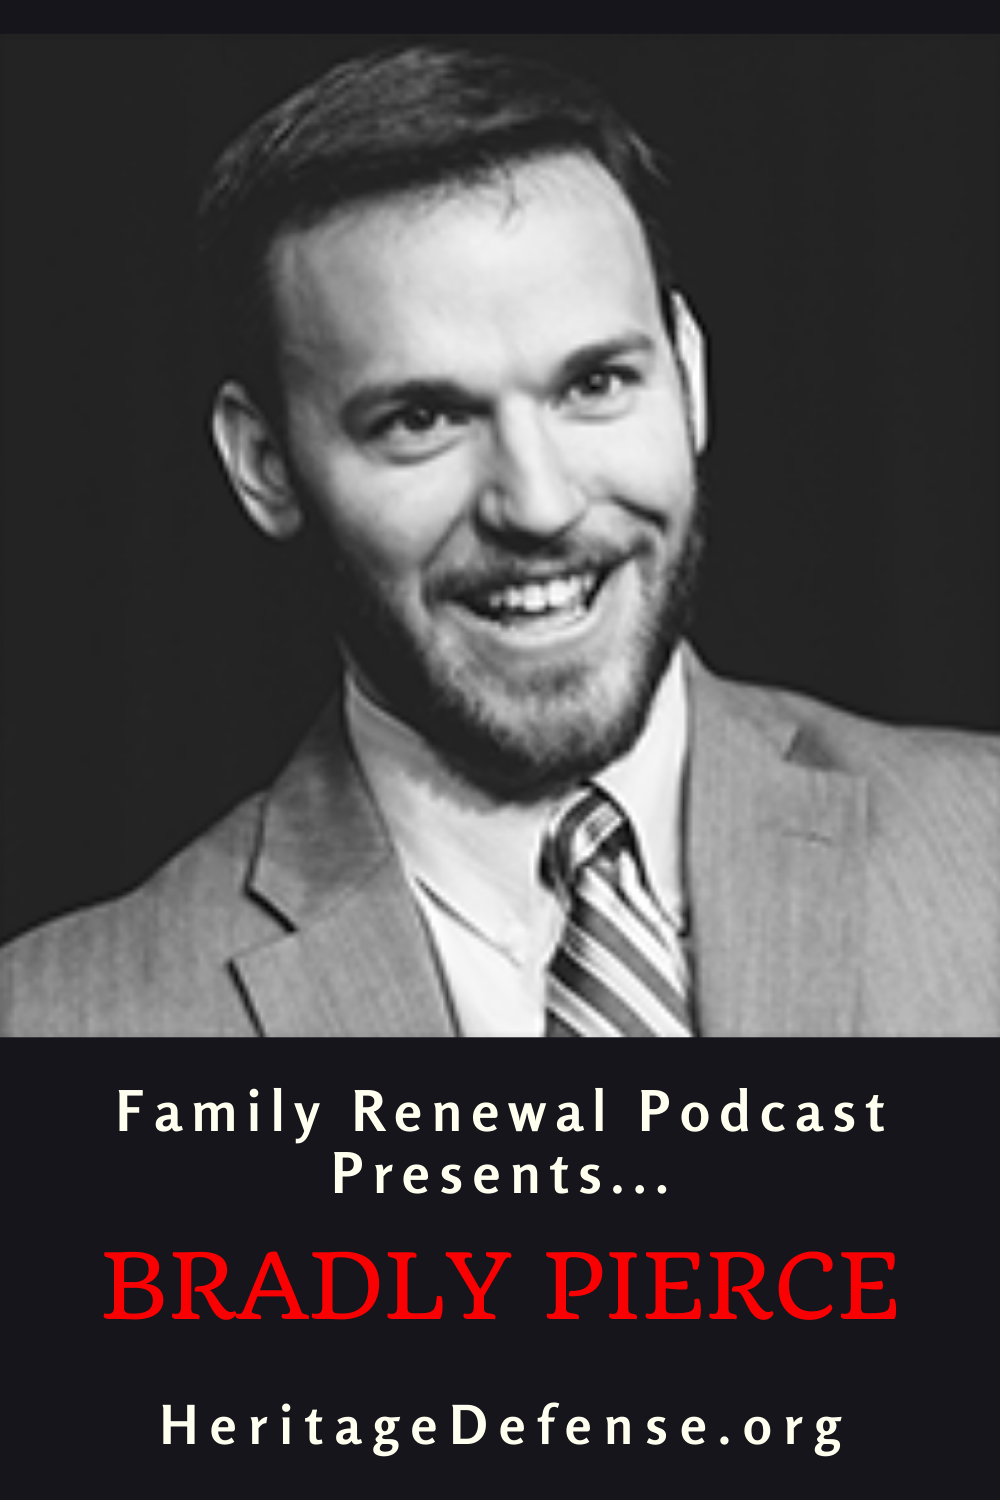 In this episode, Israel Wayne welcomes Bradley Pierce. Bradley is VP and co-founder of Heritage Defense, a legal defense association that represents parents who have been falsely charged with child abuse and/or neglect.